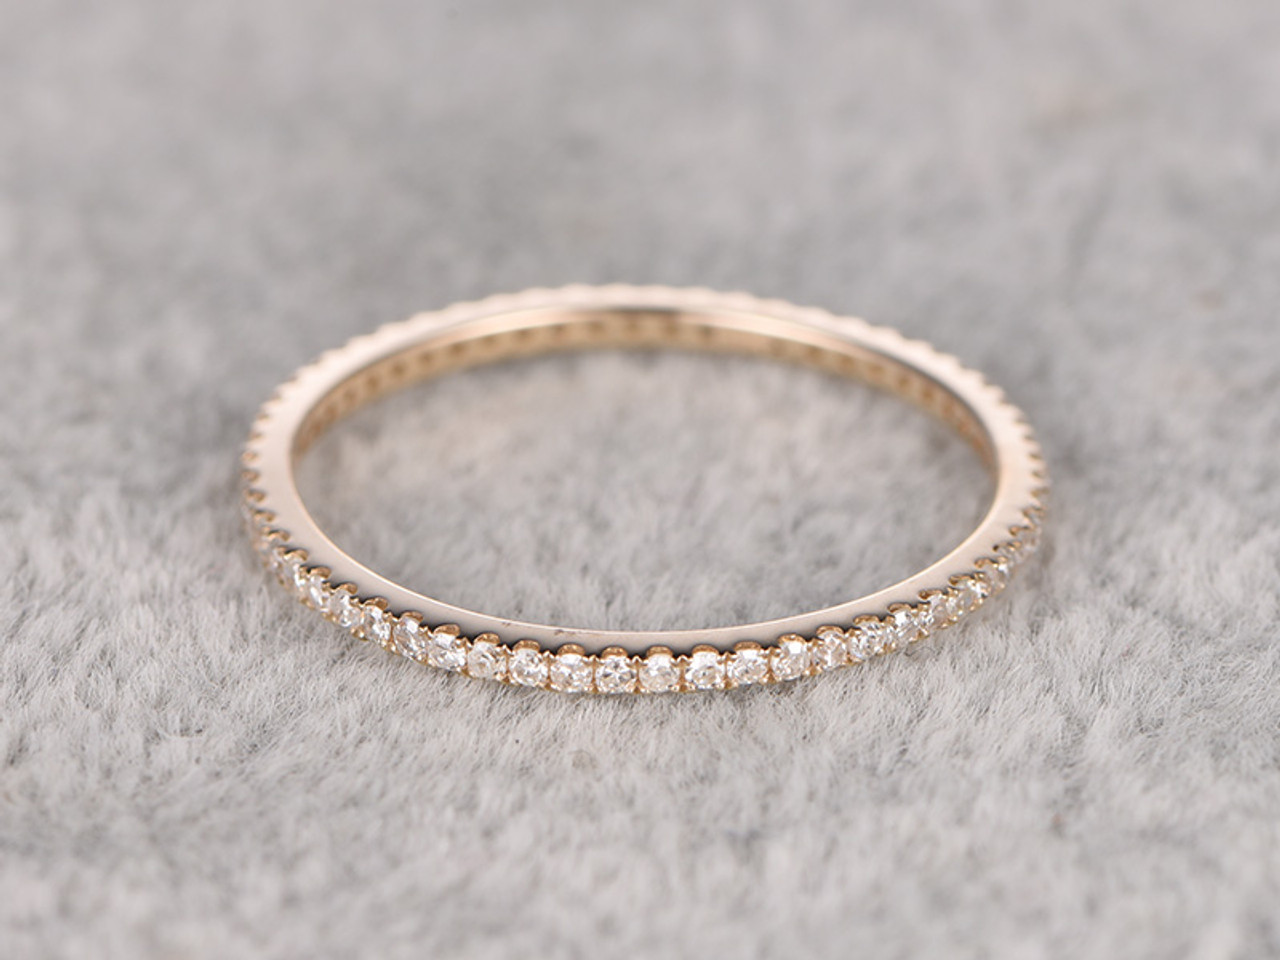 Diamond wedding rings for her 14k yellow gold thin pave full diamond wedding rings for her 14k yellow gold thin pave full eternity band annivery ring junglespirit Choice Image